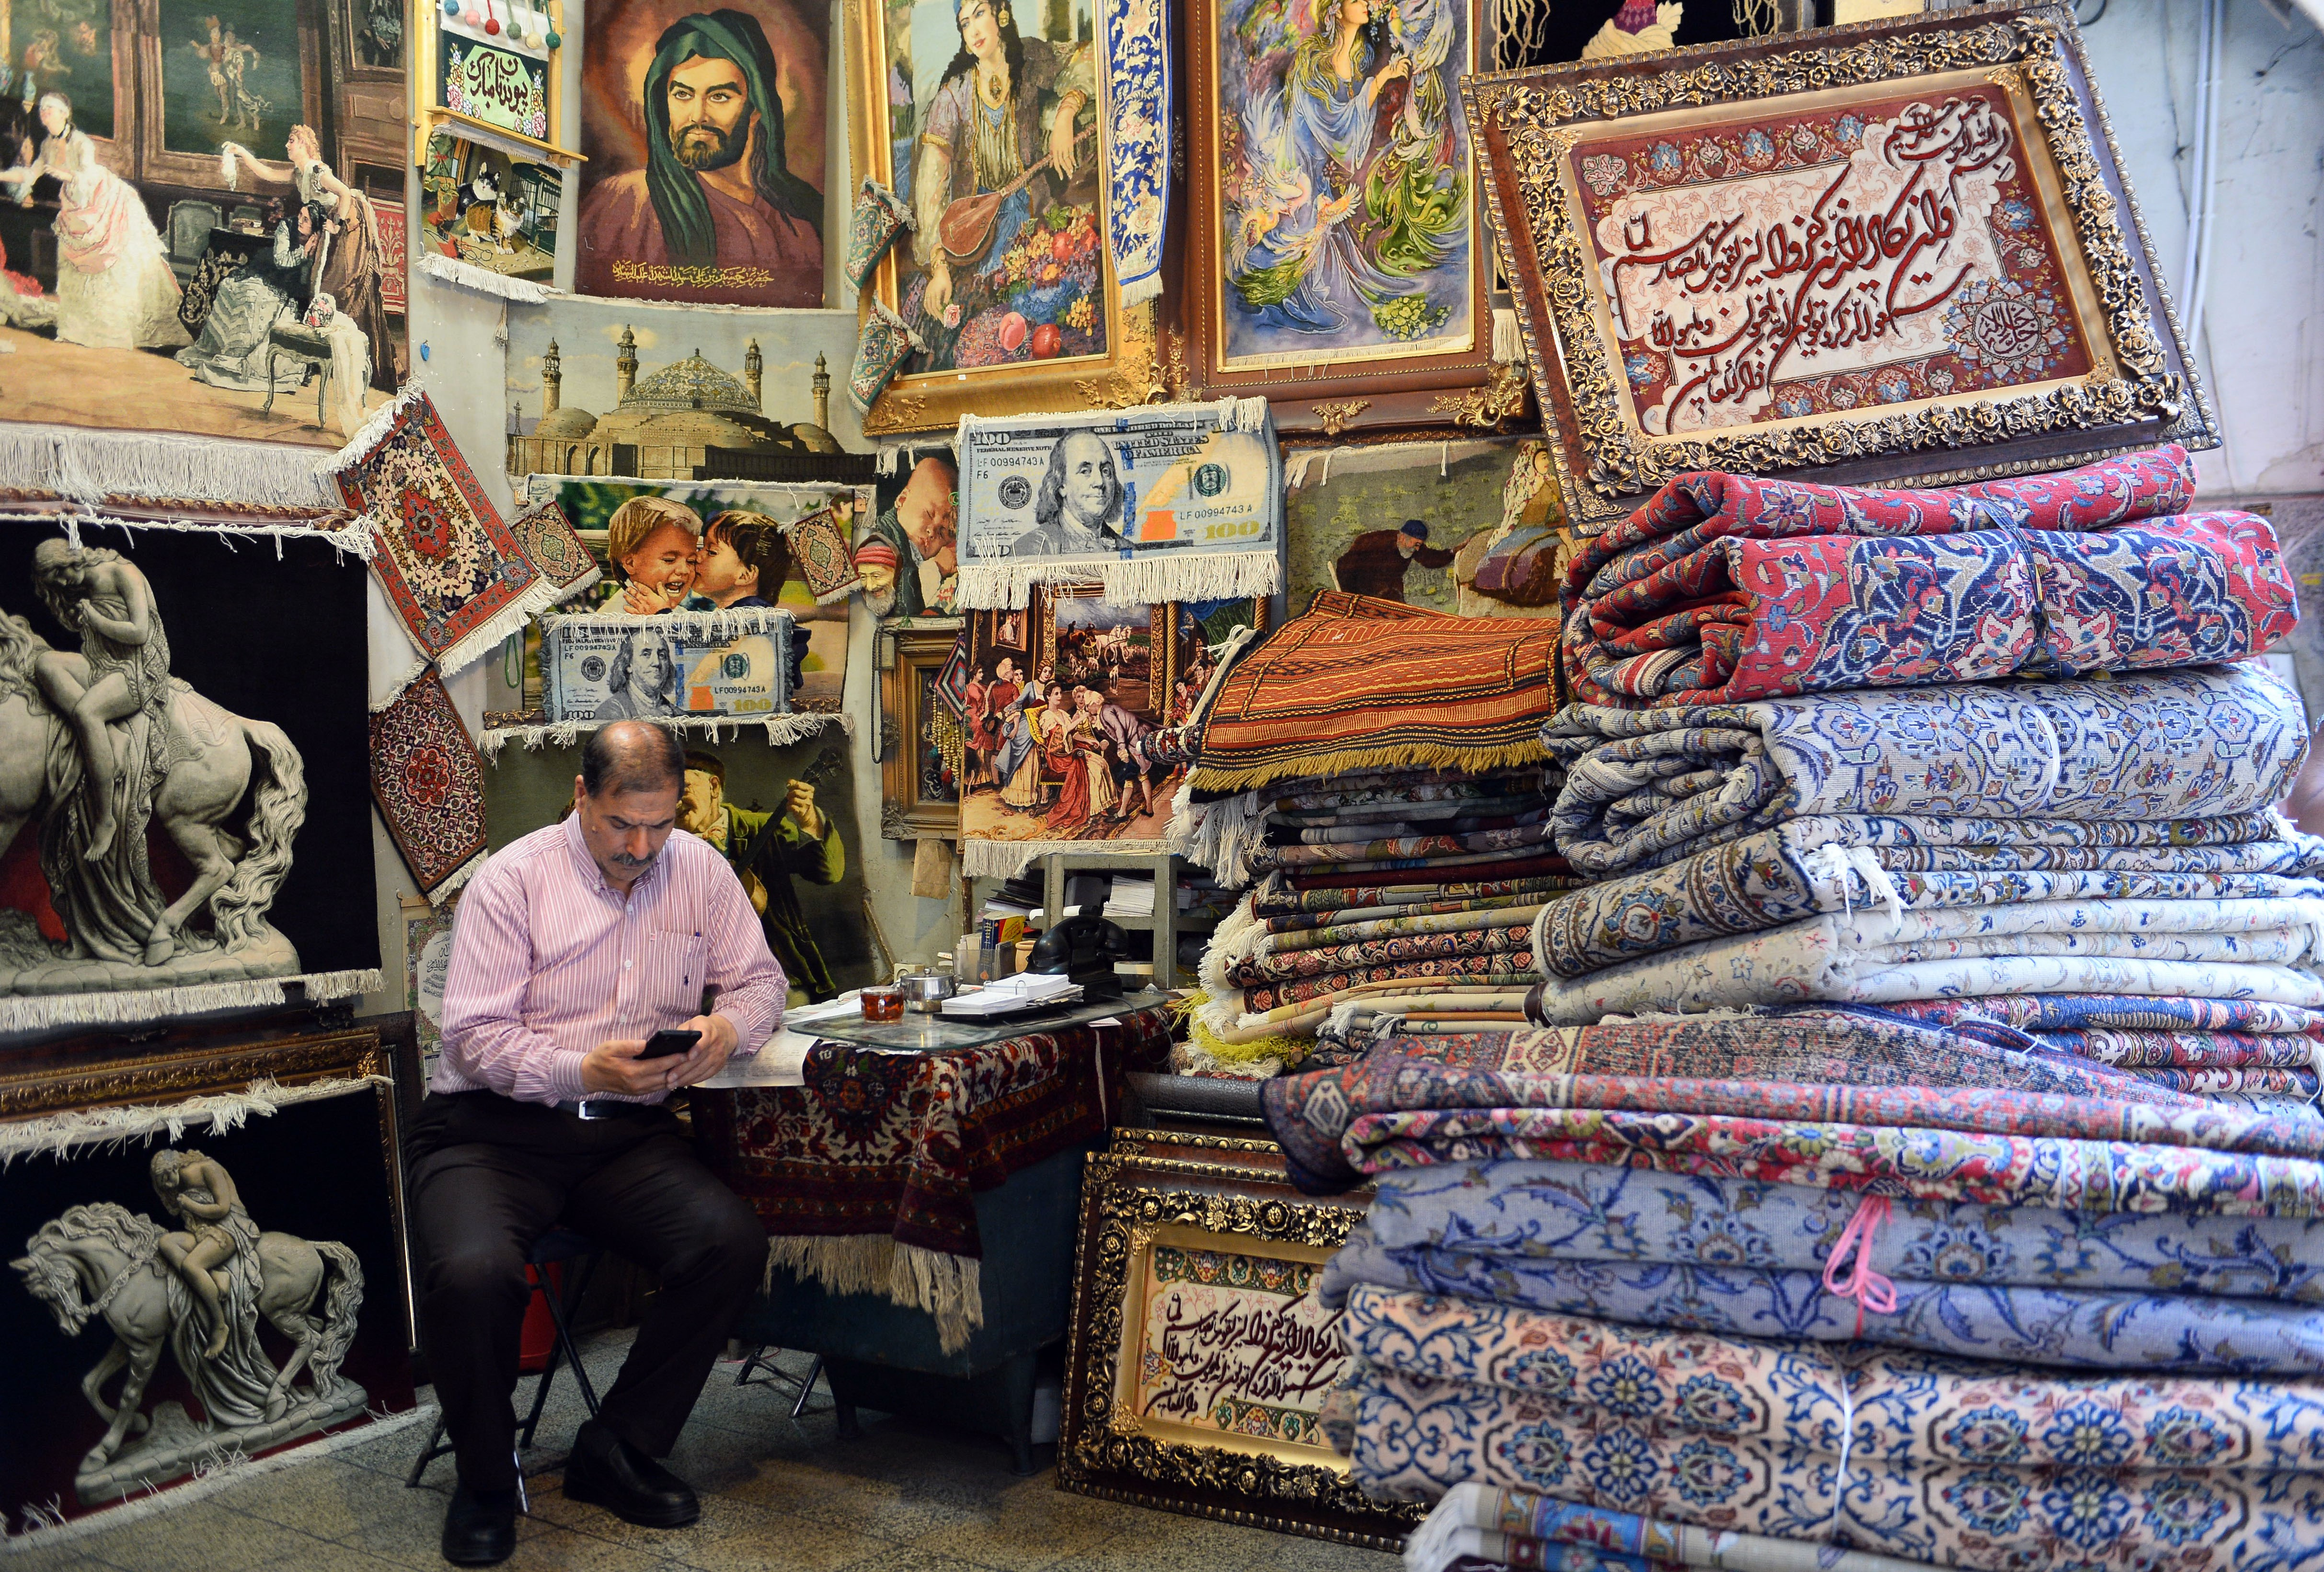 A carpet seller is seen at a bazaar in Tehran a day before the U.S. re-enforced sanctions against Iran on Aug. 7, 2018